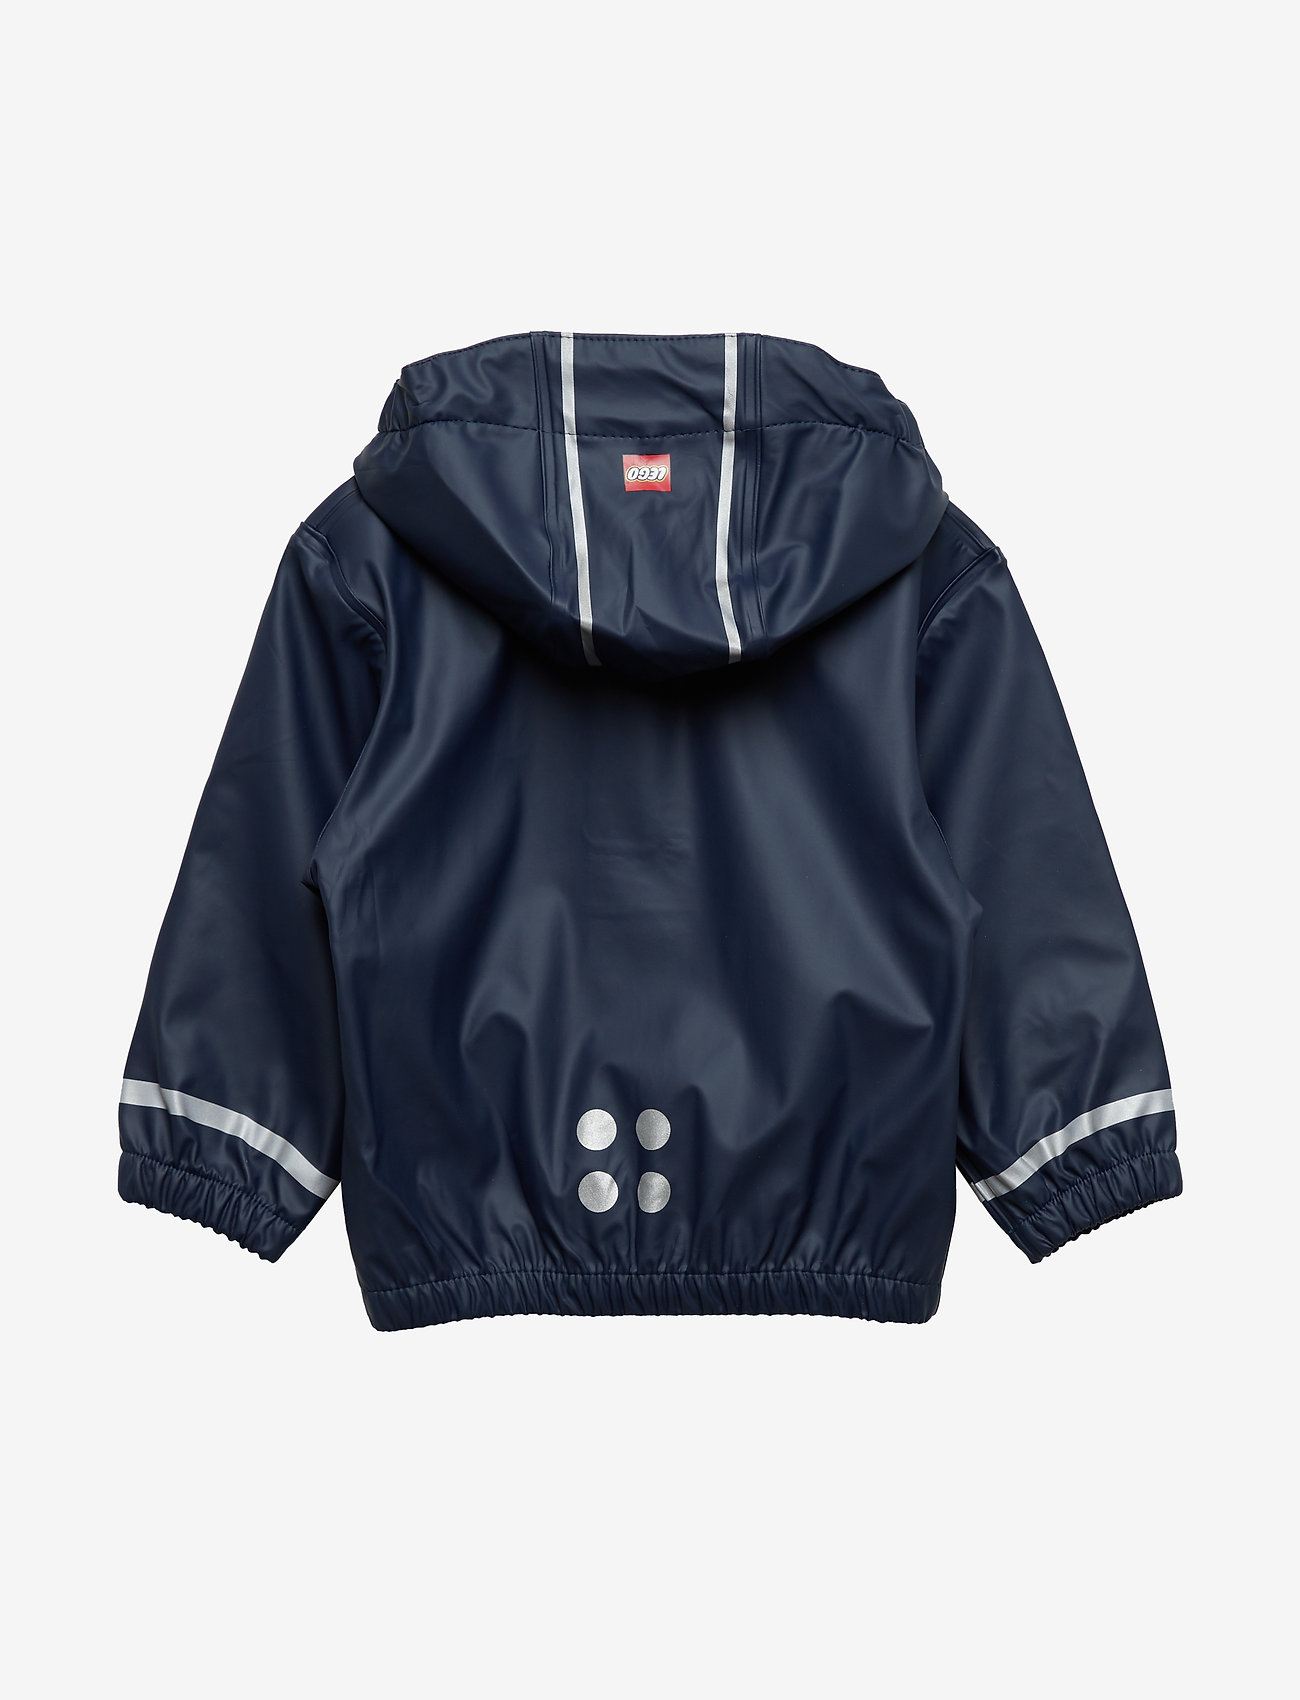 Lego wear - JUSTICE 101 - RAIN JACKET - jassen - dark navy - 1